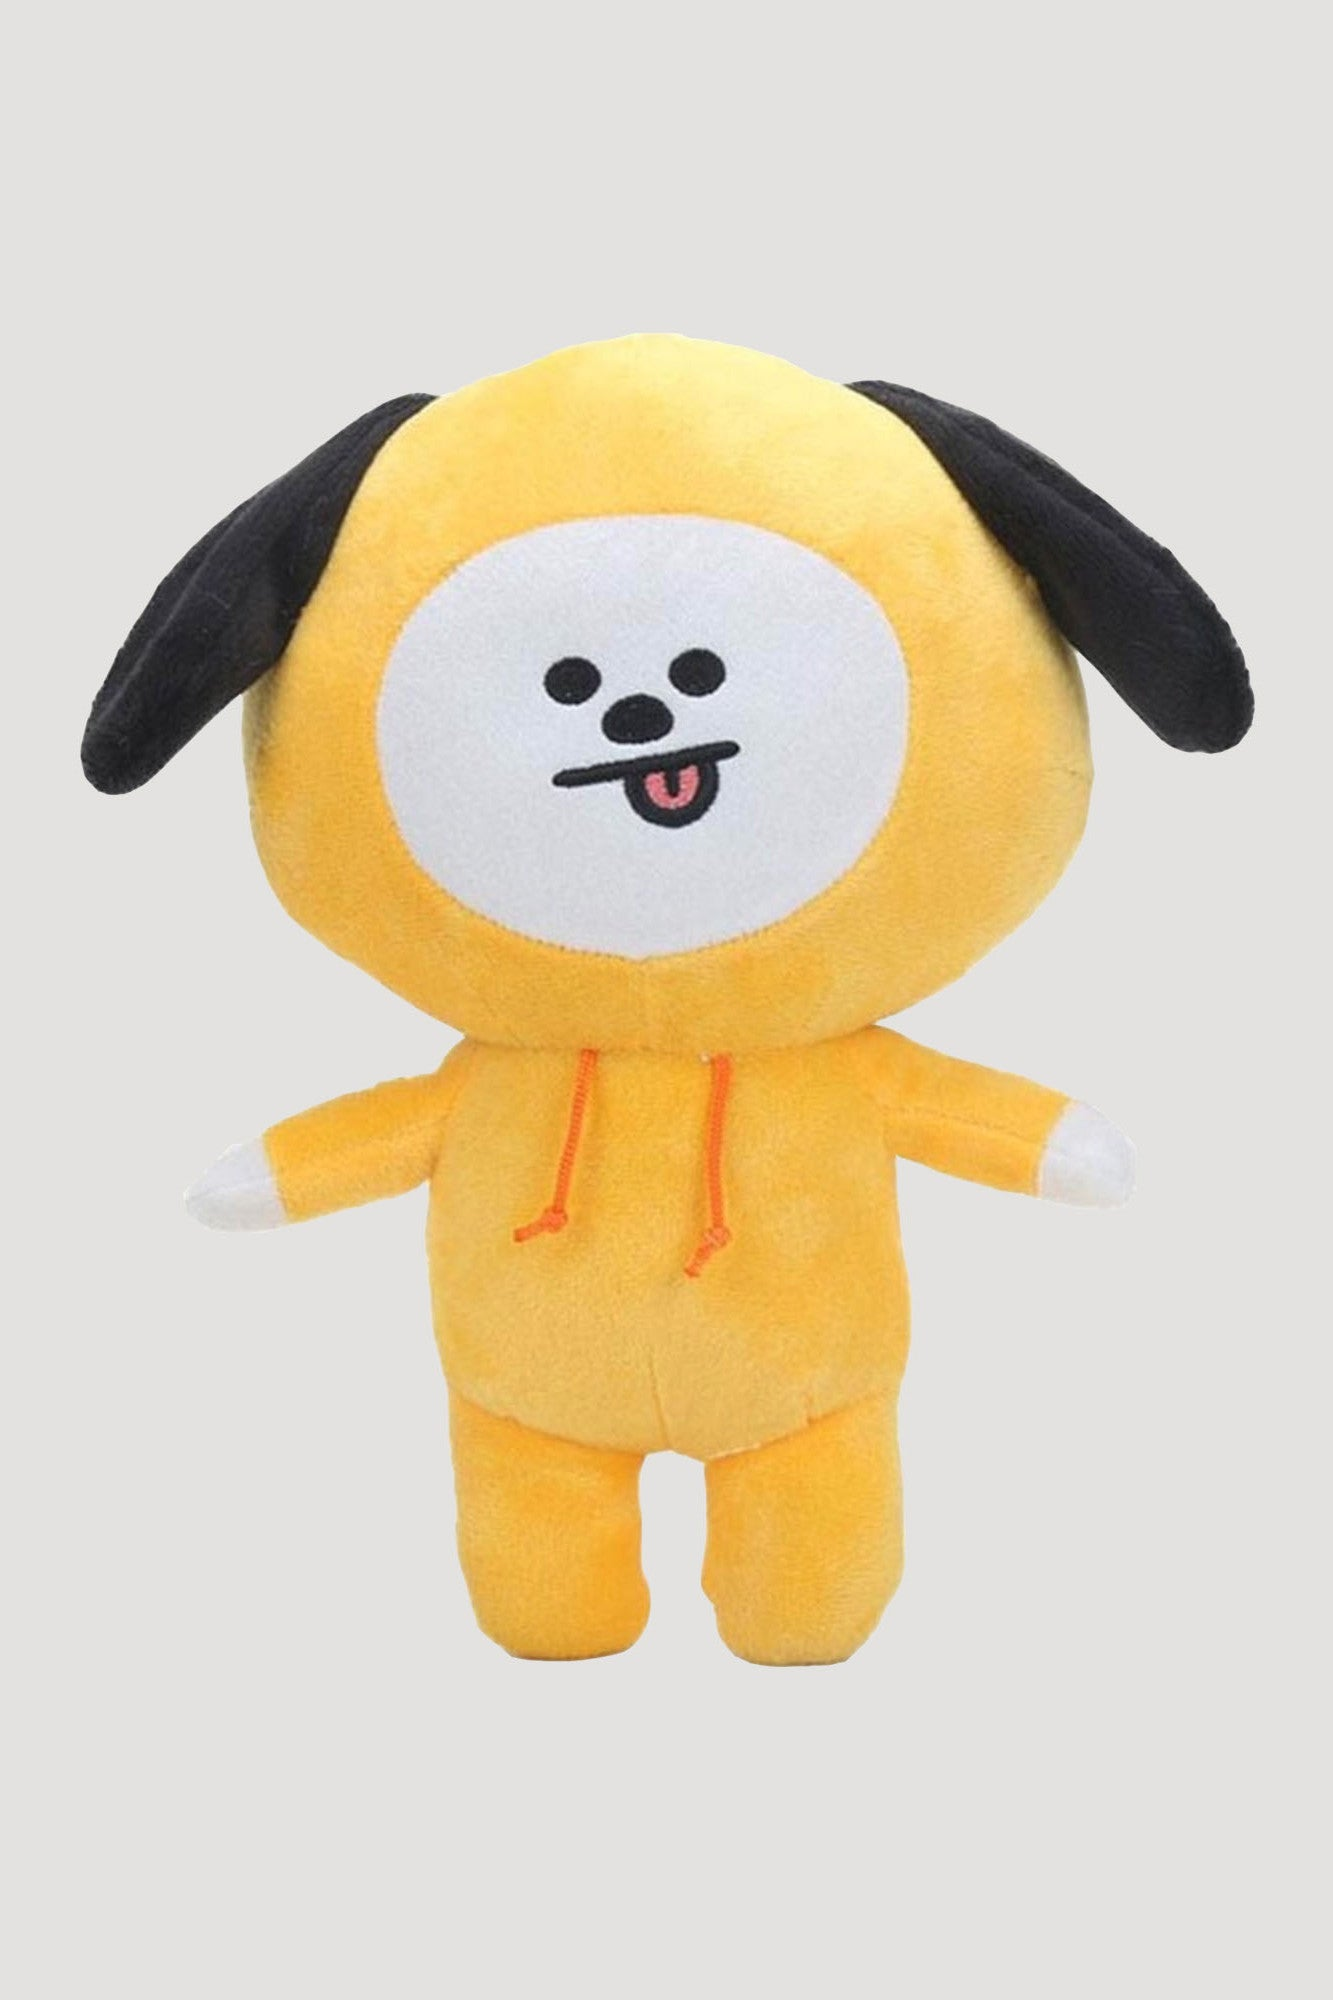 K-POP BTS BT21 Chimmy Jimin Plush